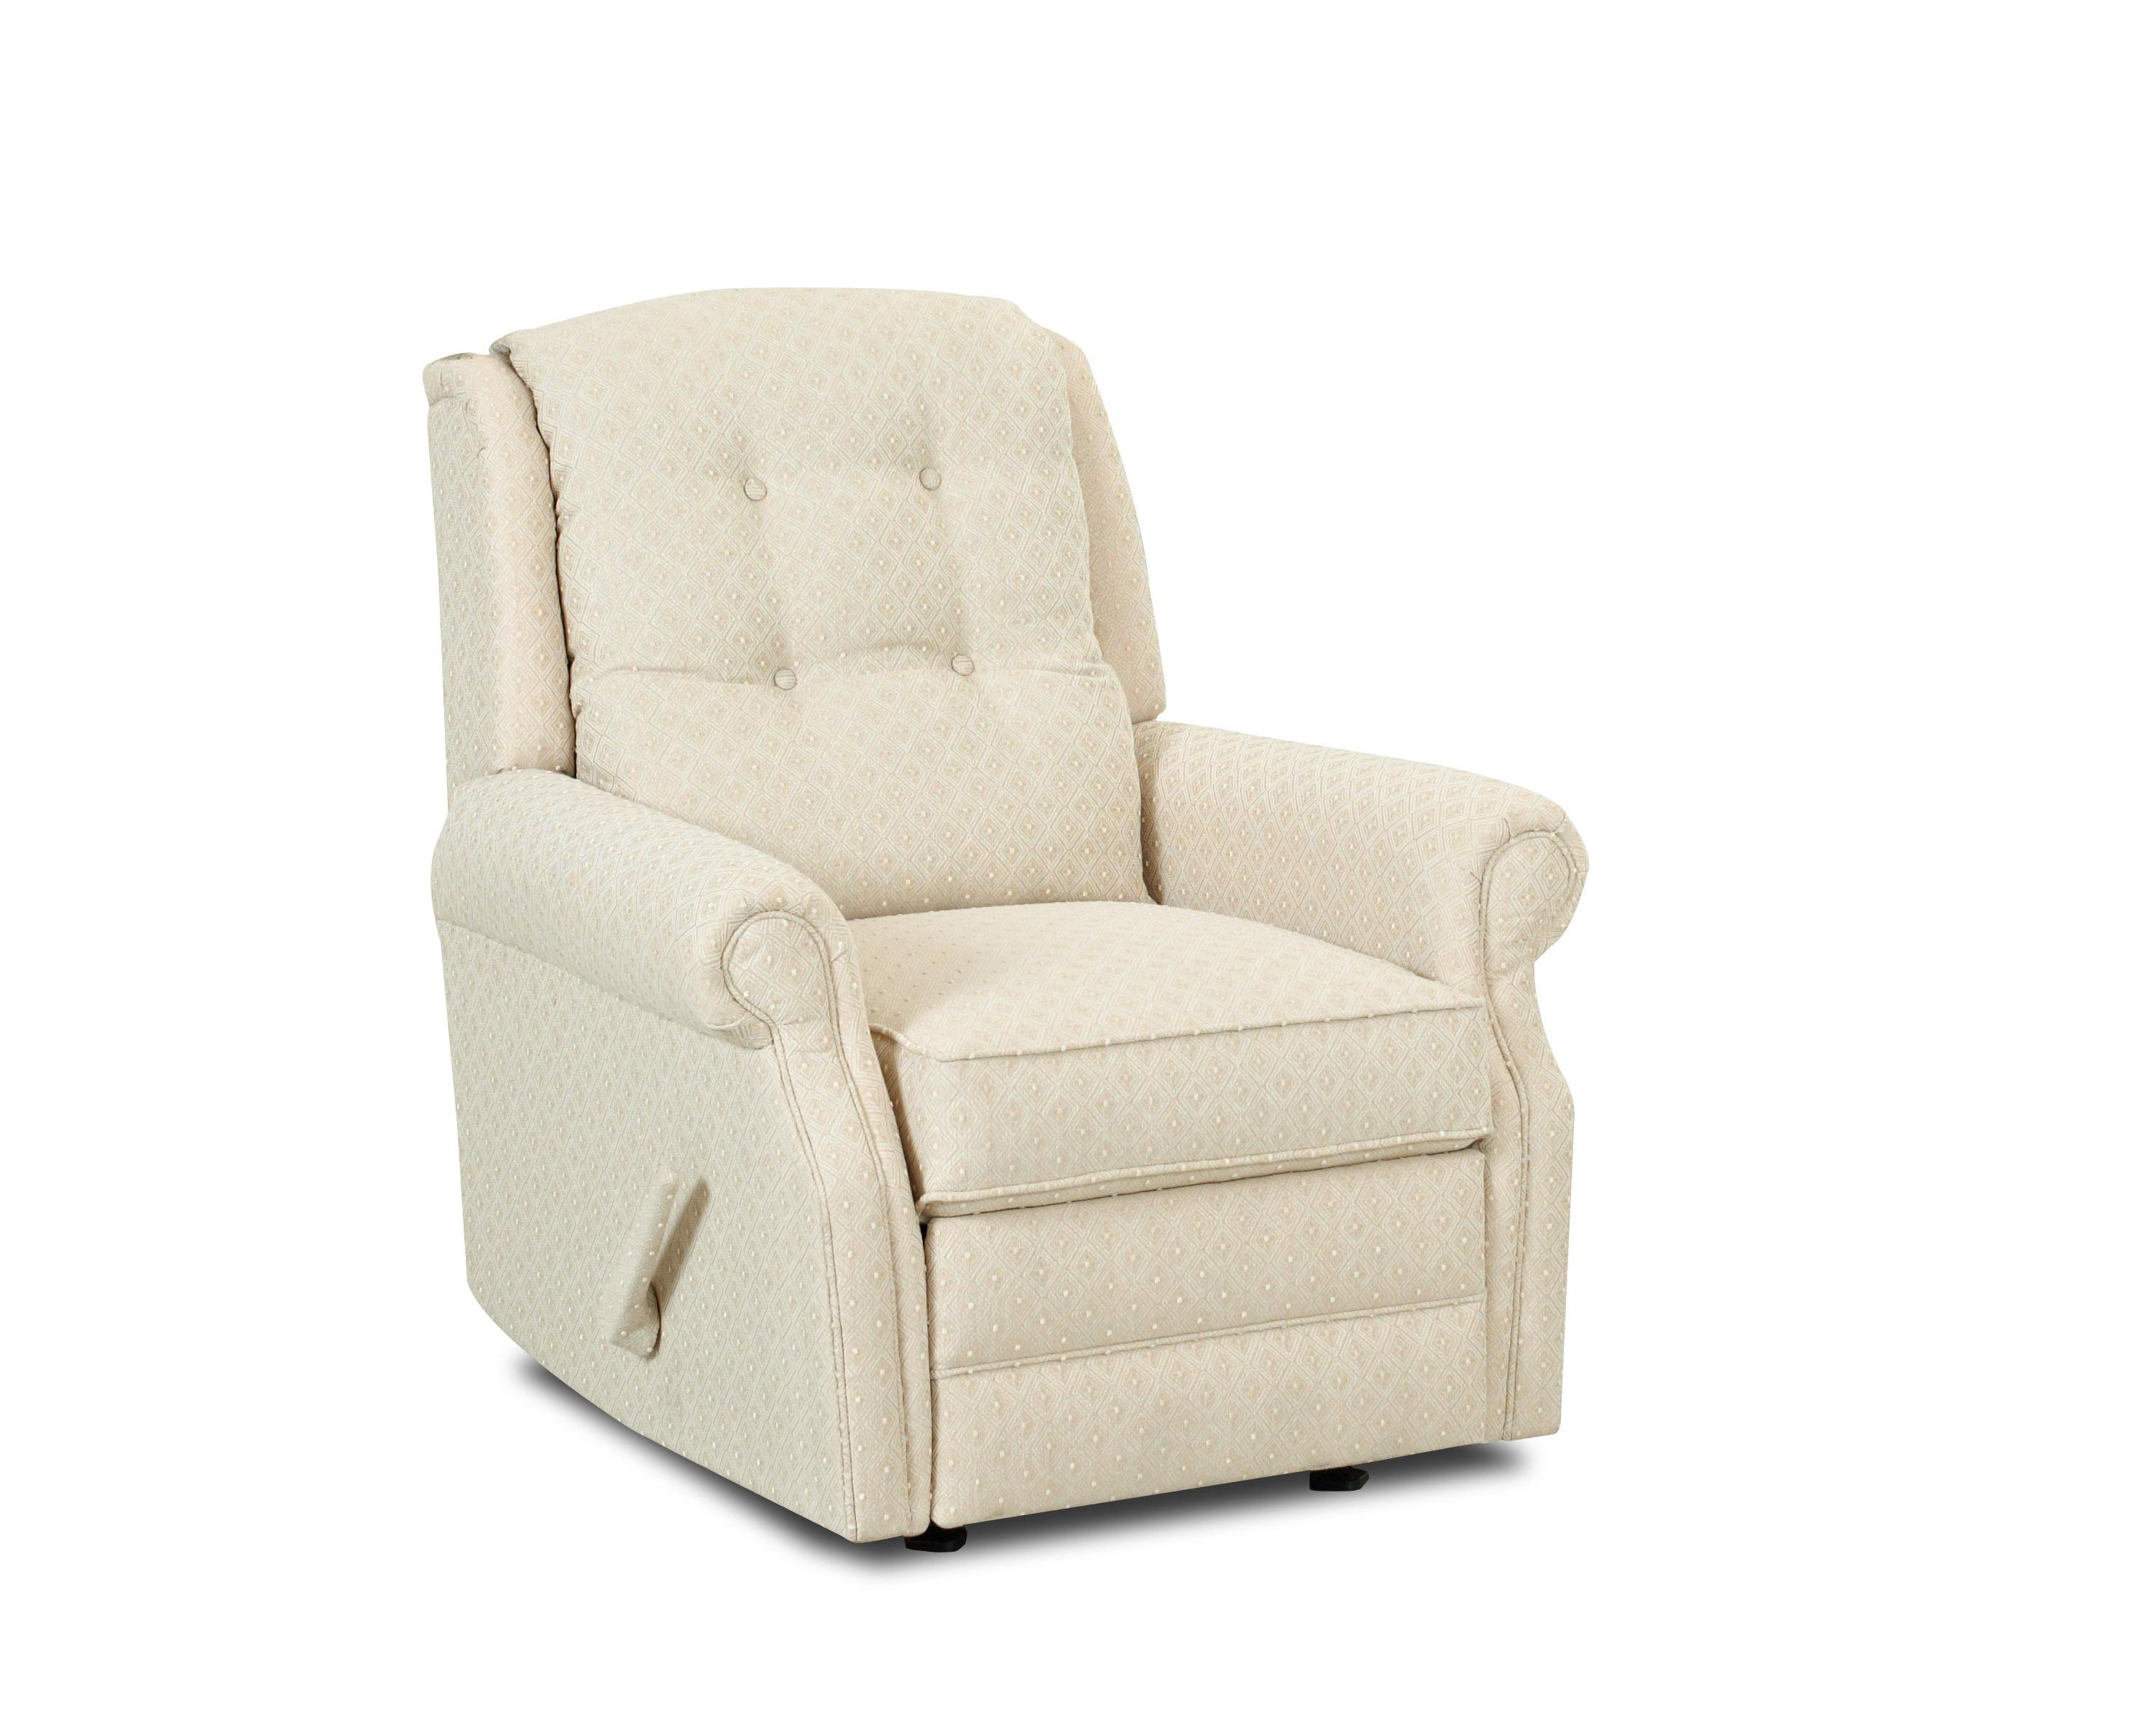 Transitional Swivel Gliding Reclining Chair with Button Tufting  sc 1 st  Wolf Furniture & Transitional Swivel Gliding Reclining Chair with Button Tufting by ... islam-shia.org